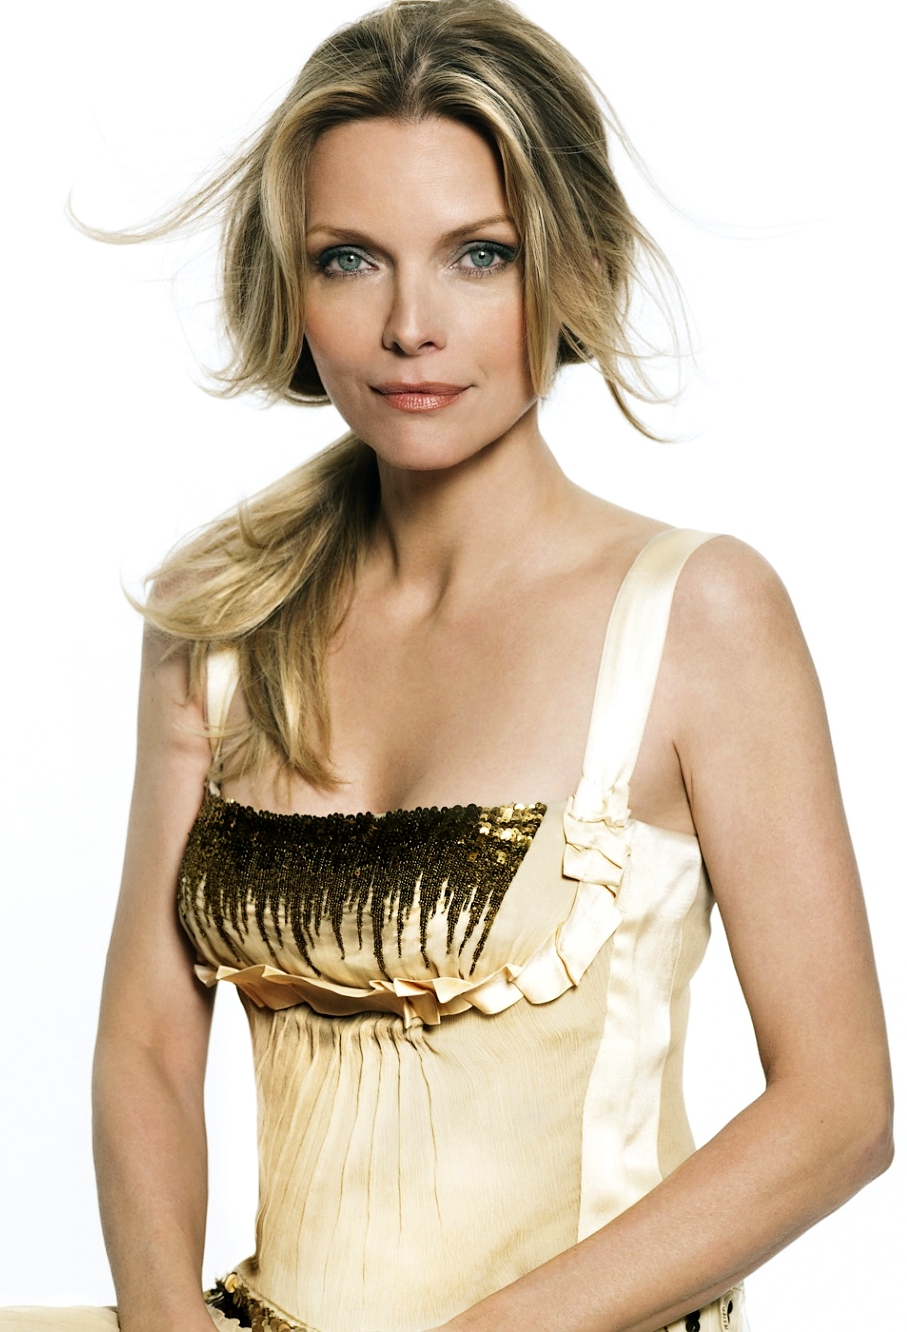 michelle pfeiffer - actor - cinemagia.ro